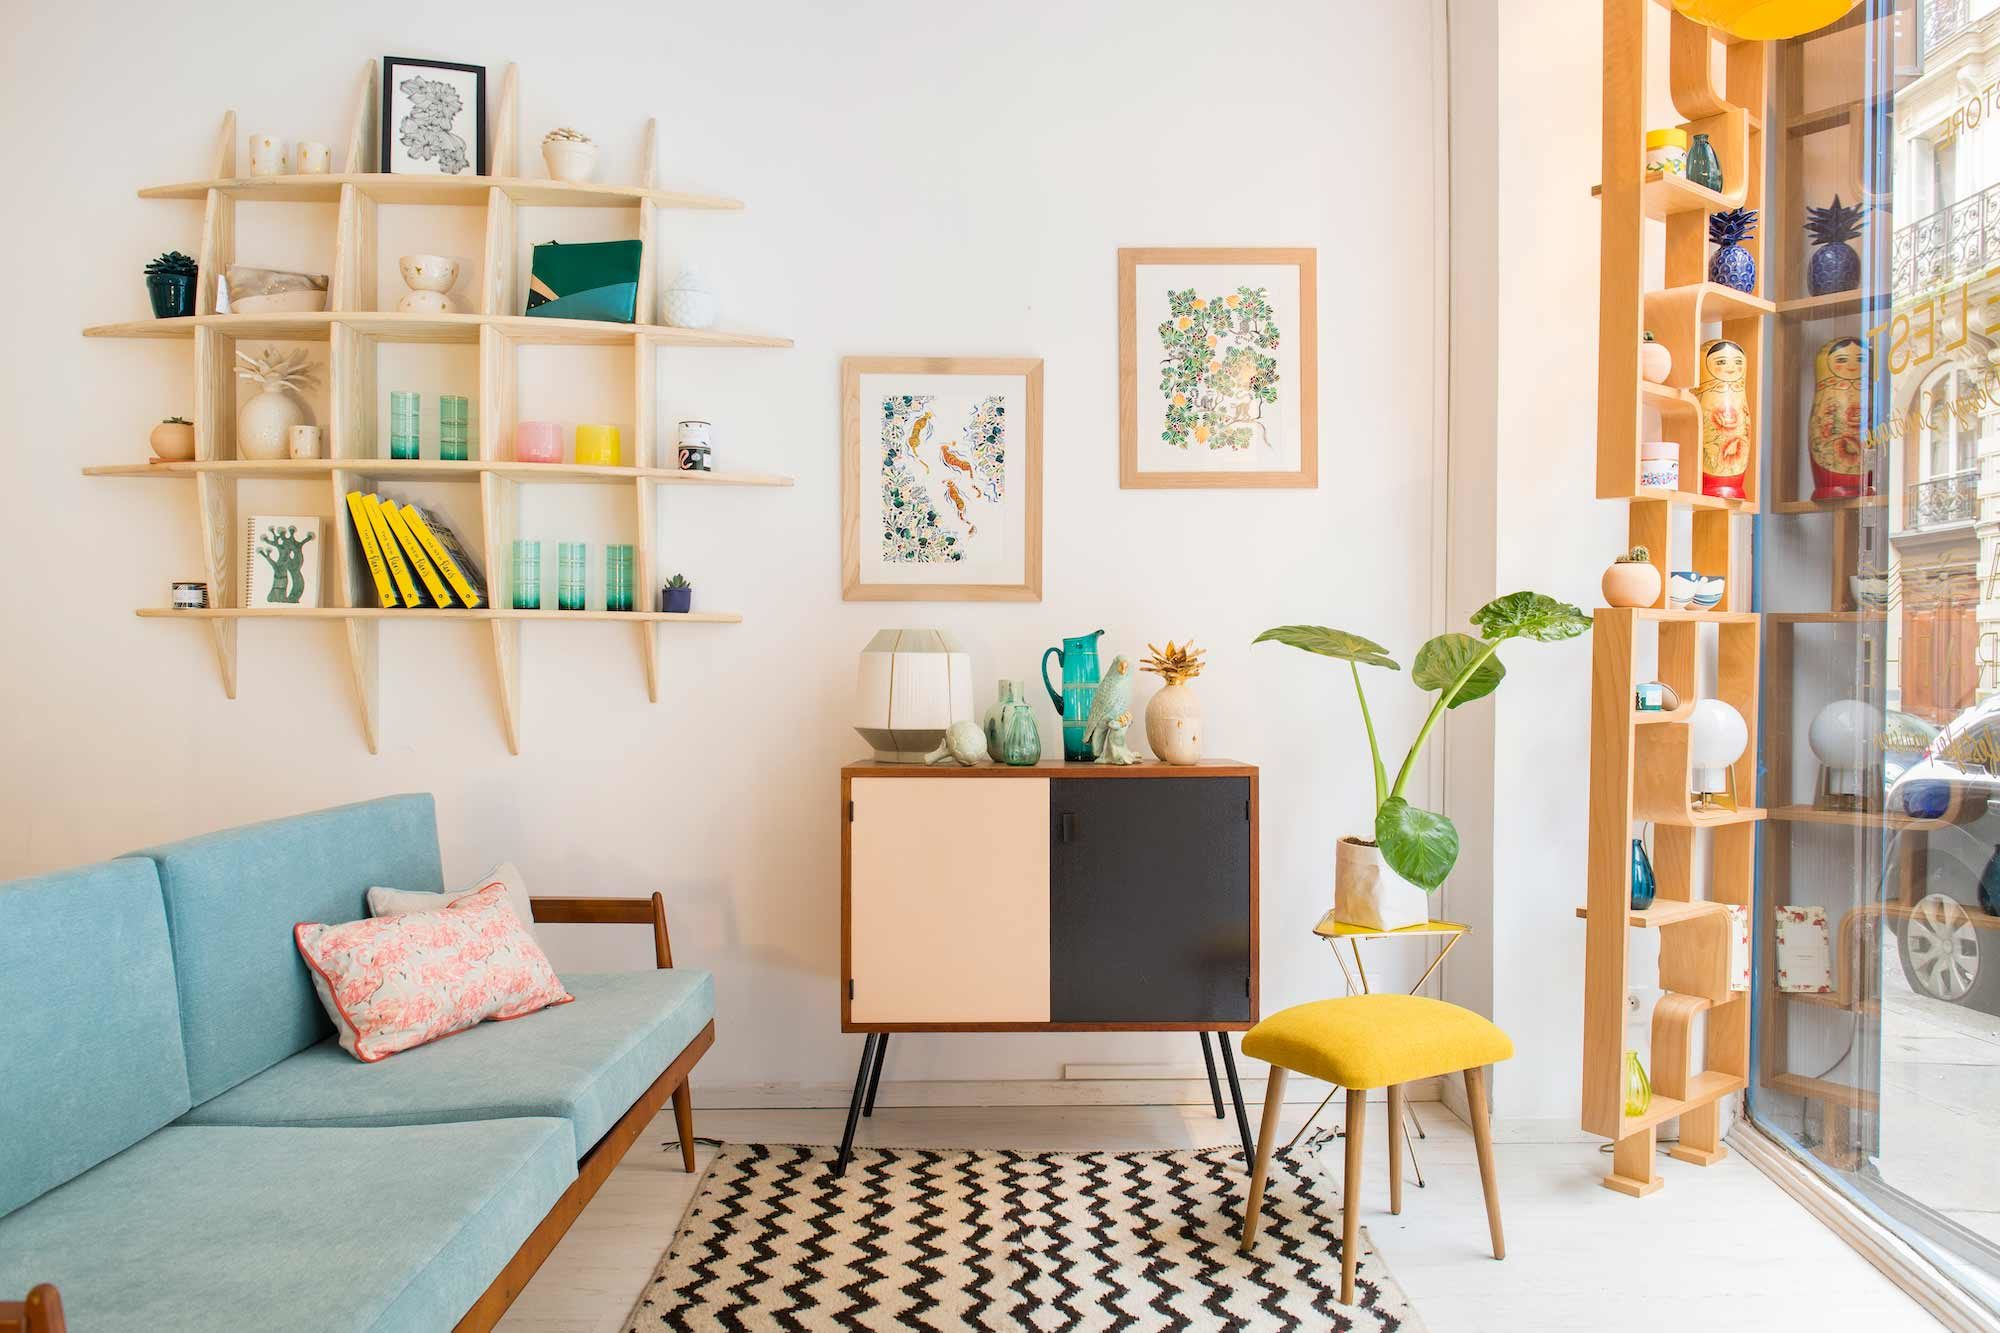 Bloc de l'Est is a cool furniture concept store in Paris' South Pigalle area with a 50s to 80s Soviet style, like this duck egg blue sofa and mustard-yellow stool.